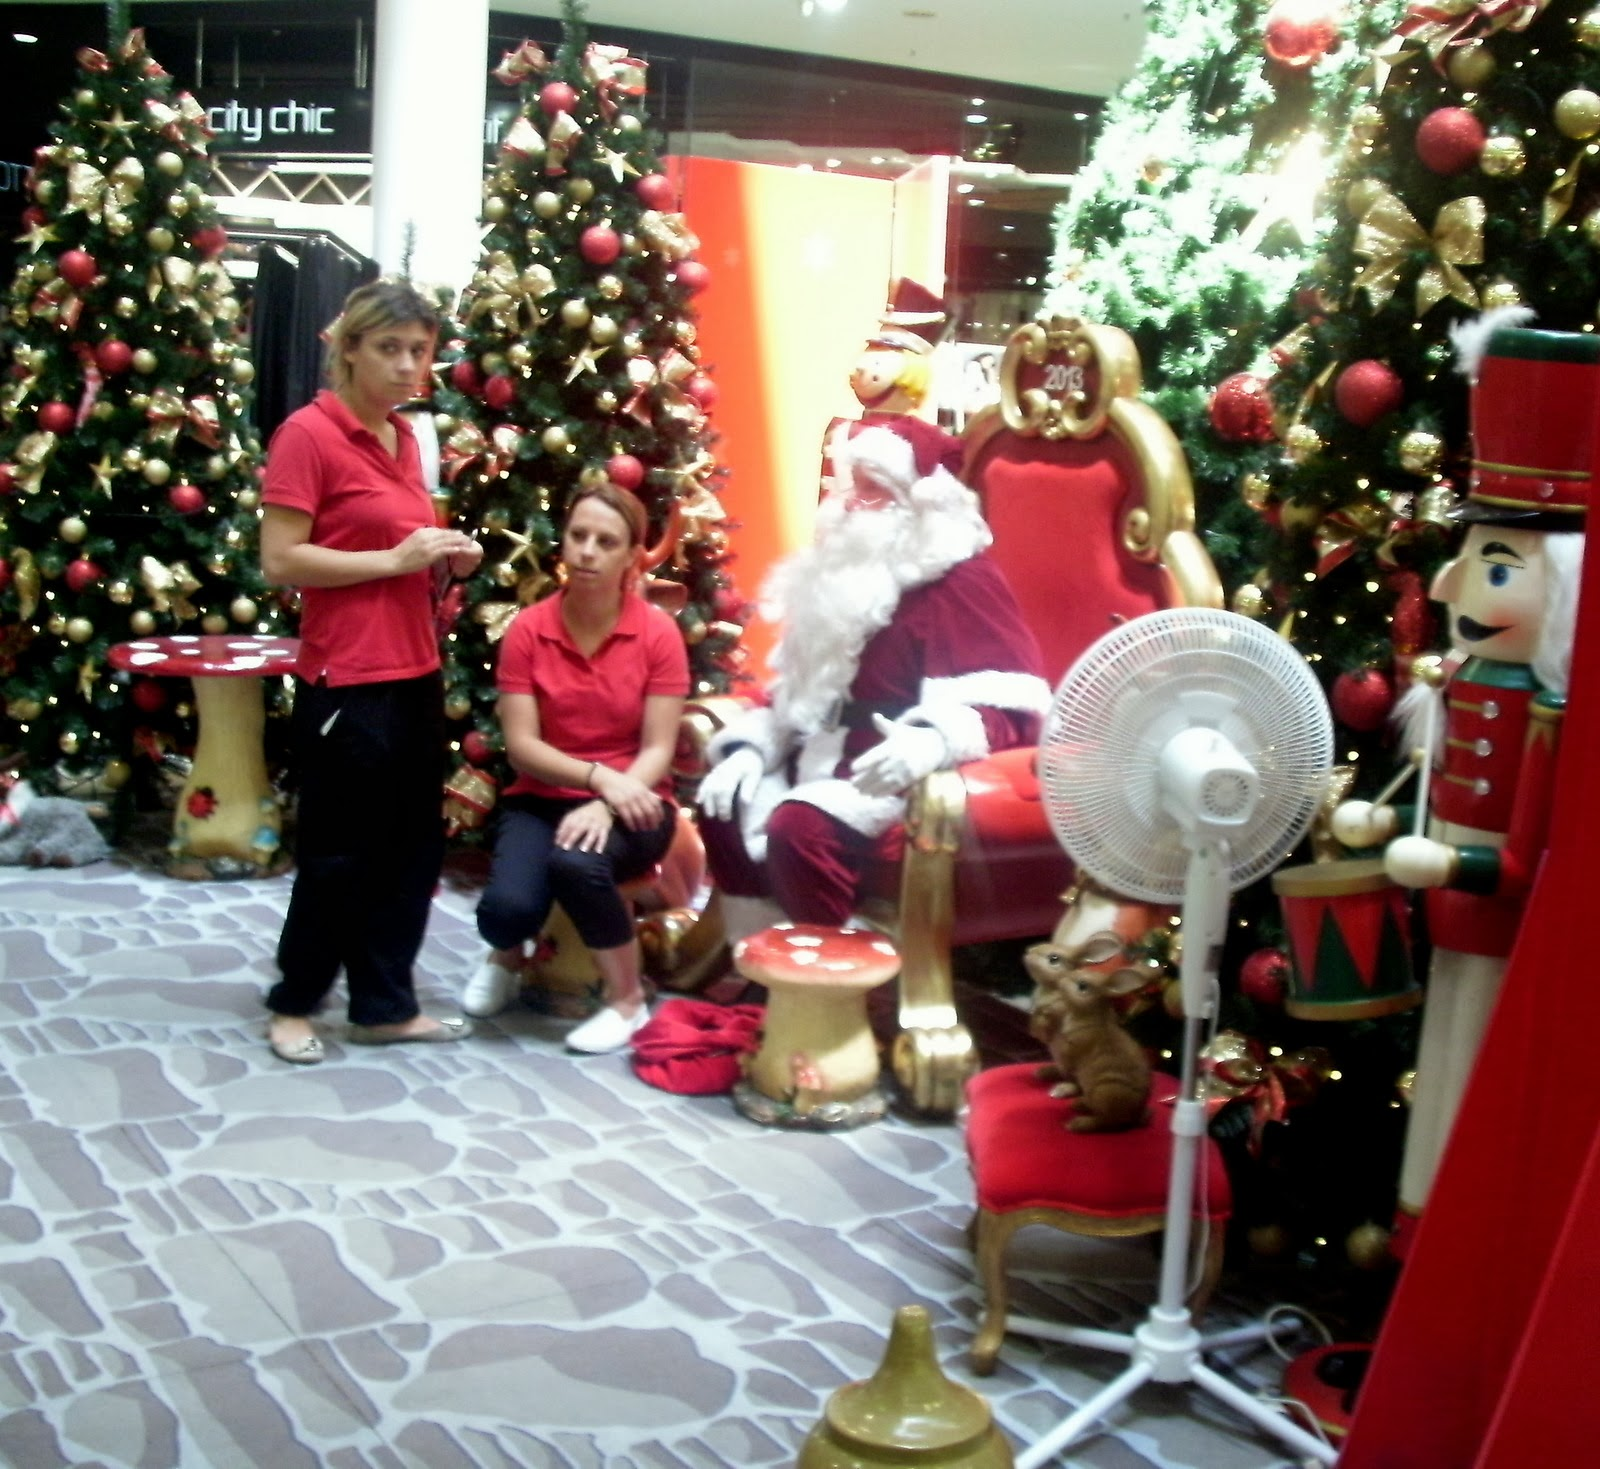 Babasiga Best wishes for a Fiji Christmas